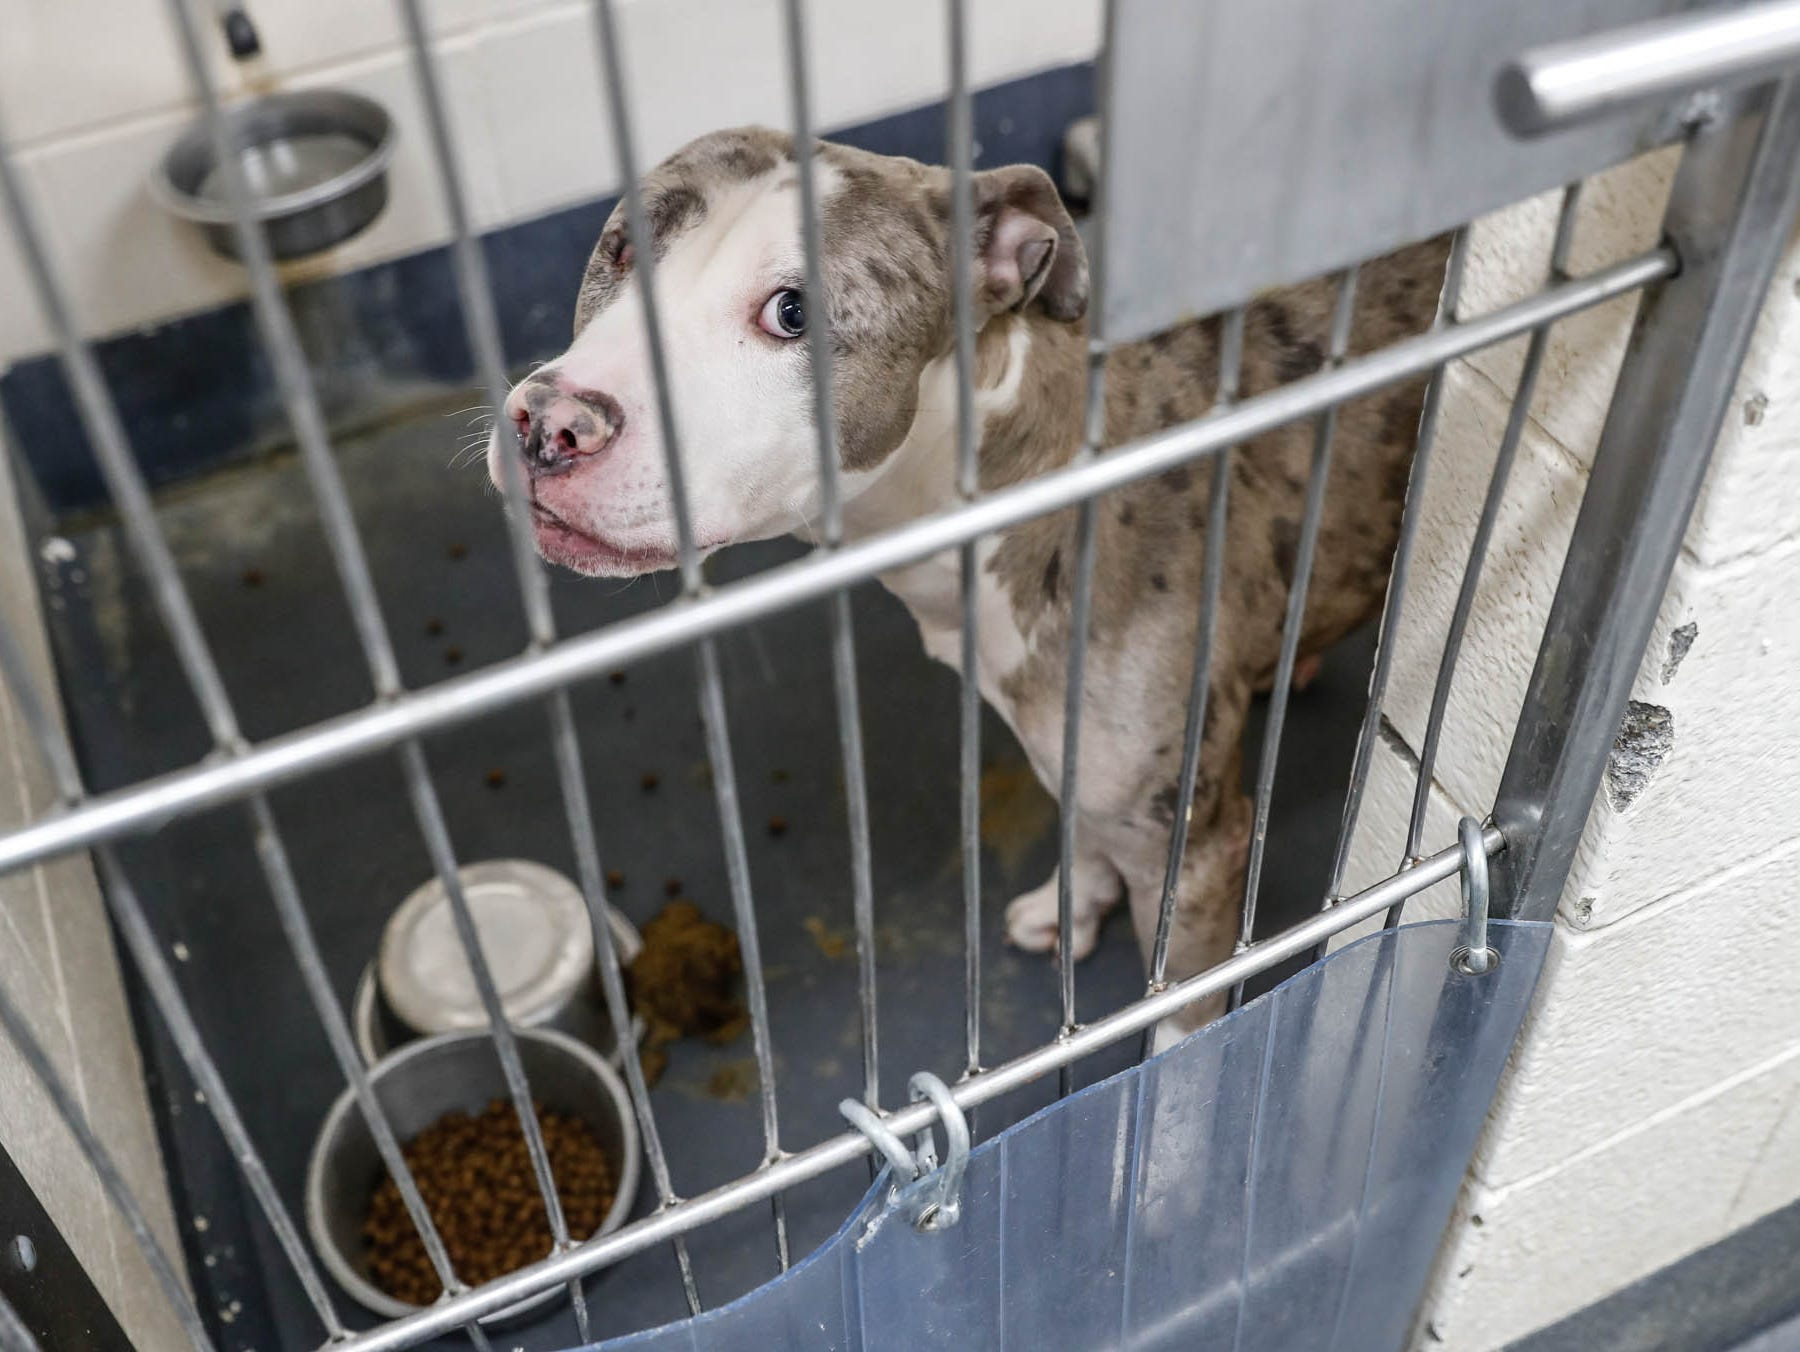 Smoke, a two-year-old, one-eyed pit bull mix is waiting on a forever home at Indianapolis, Animal Care Services, 2600 S. Harding St, on Sunday, Jan. 27, 2019. He is shy at first but will warm up and enjoy cuddles. He would do best as the only dog in a home with no children.